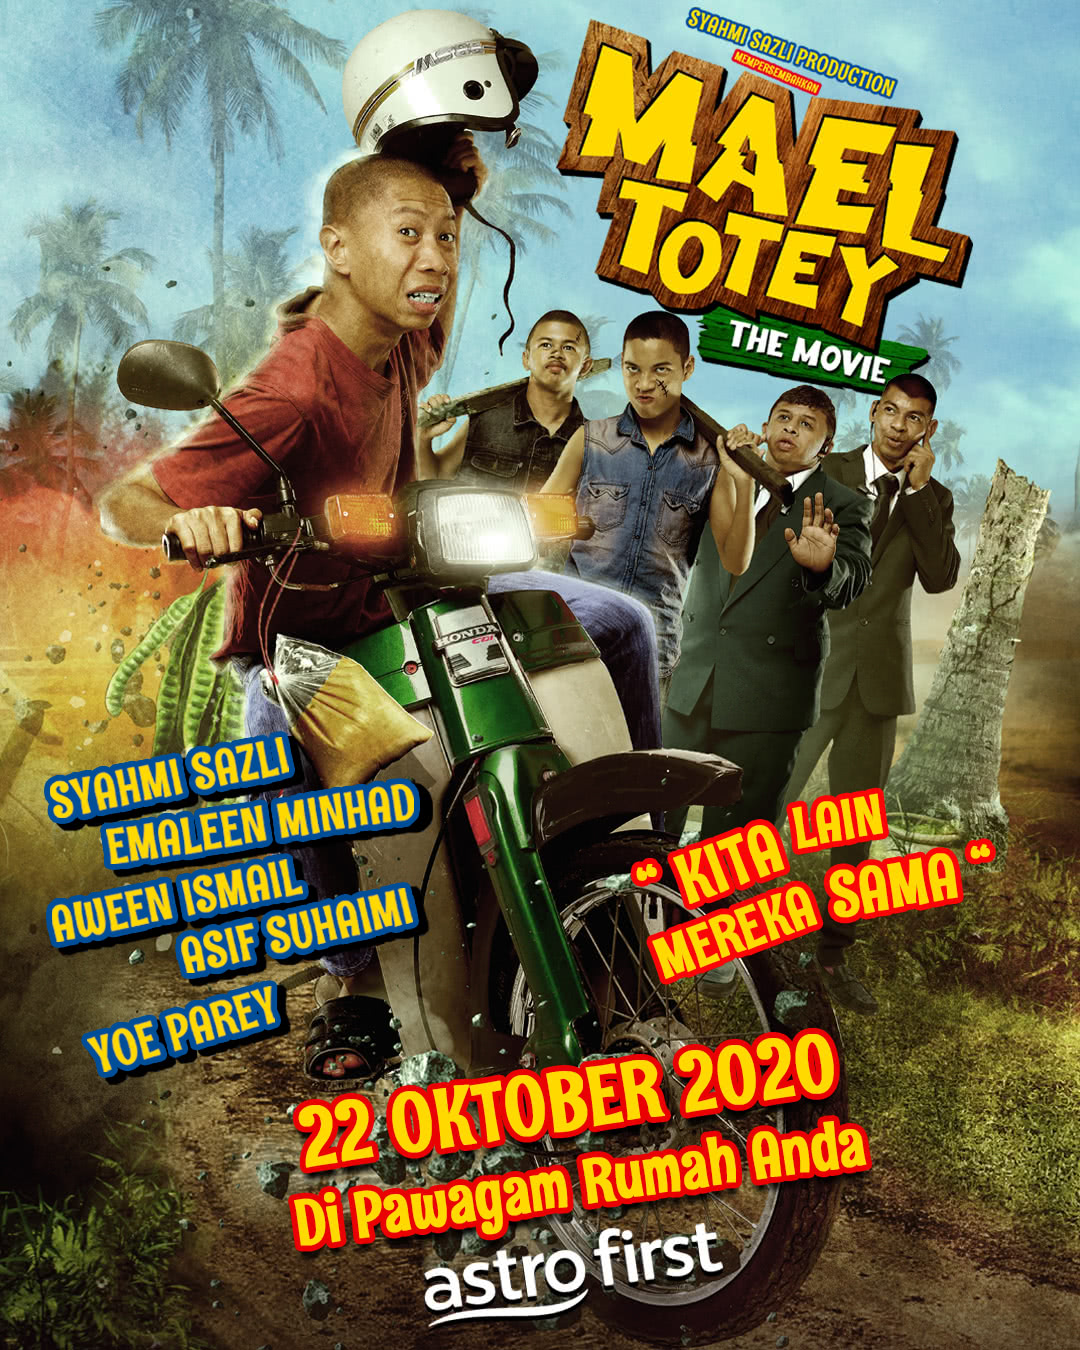 Mael Totey The Movie Poster